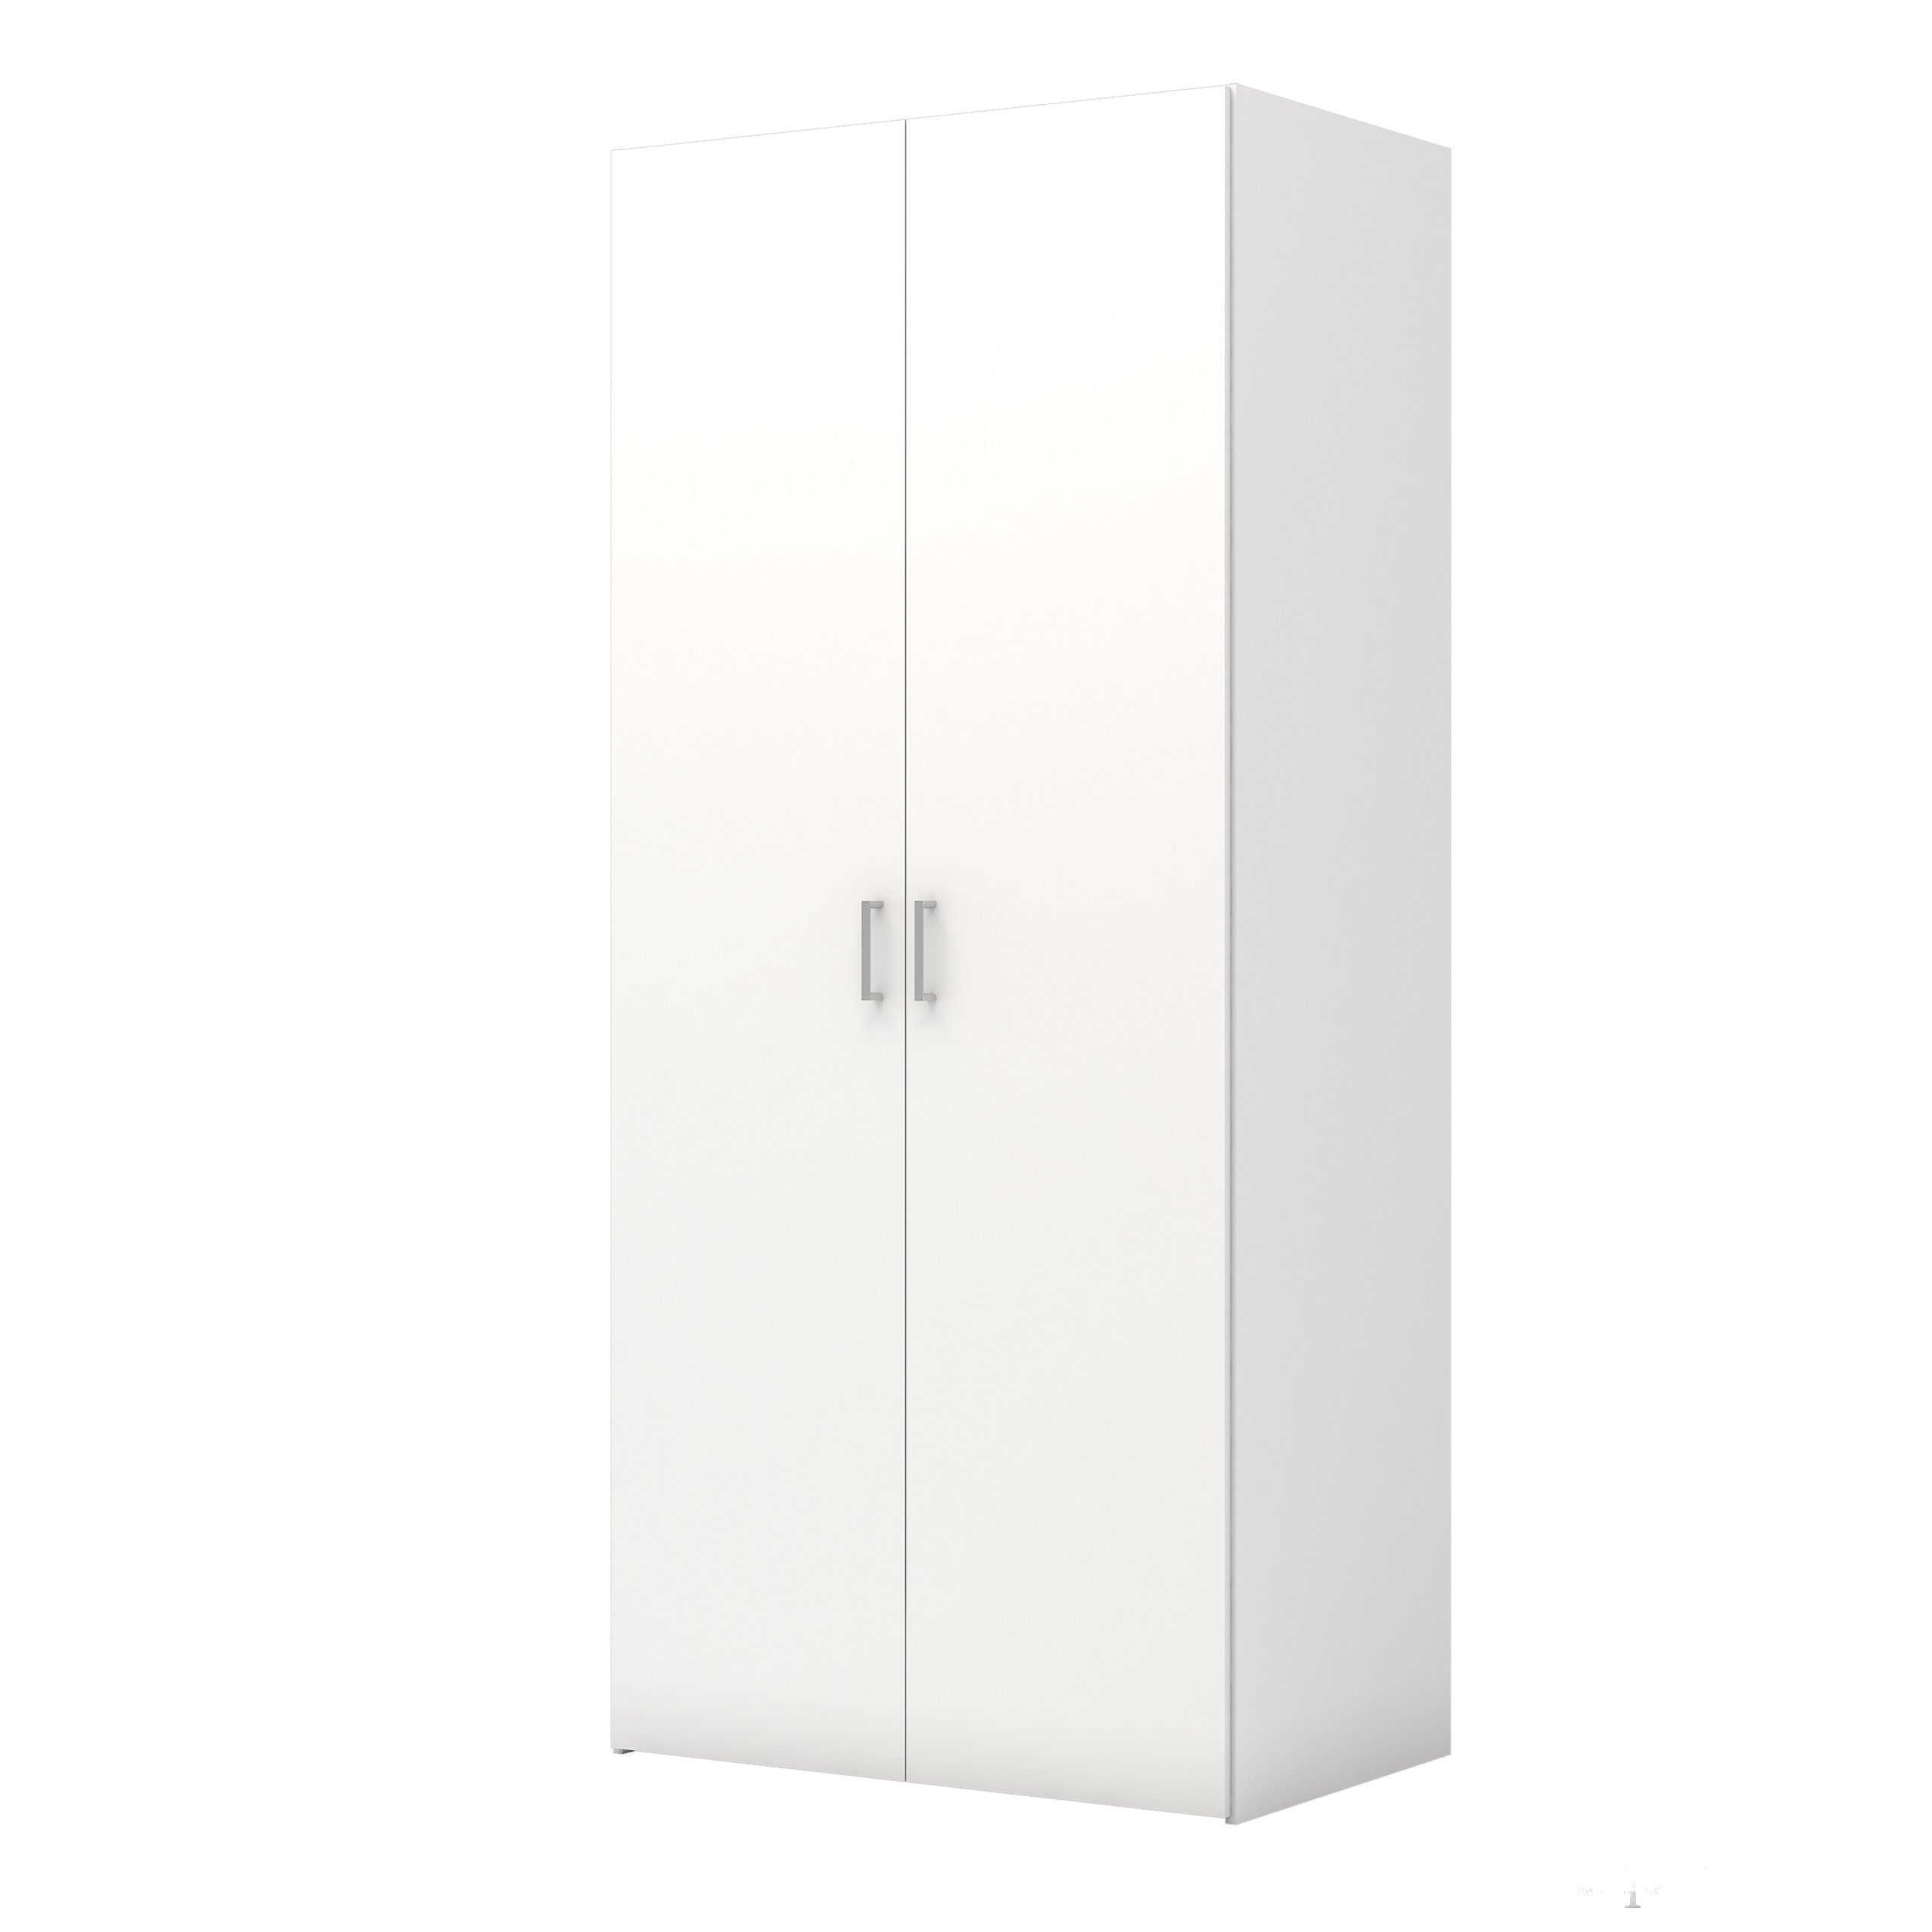 Tvilum 704174949 Space Wardrobe with with 2 Doors, White by Tvilum